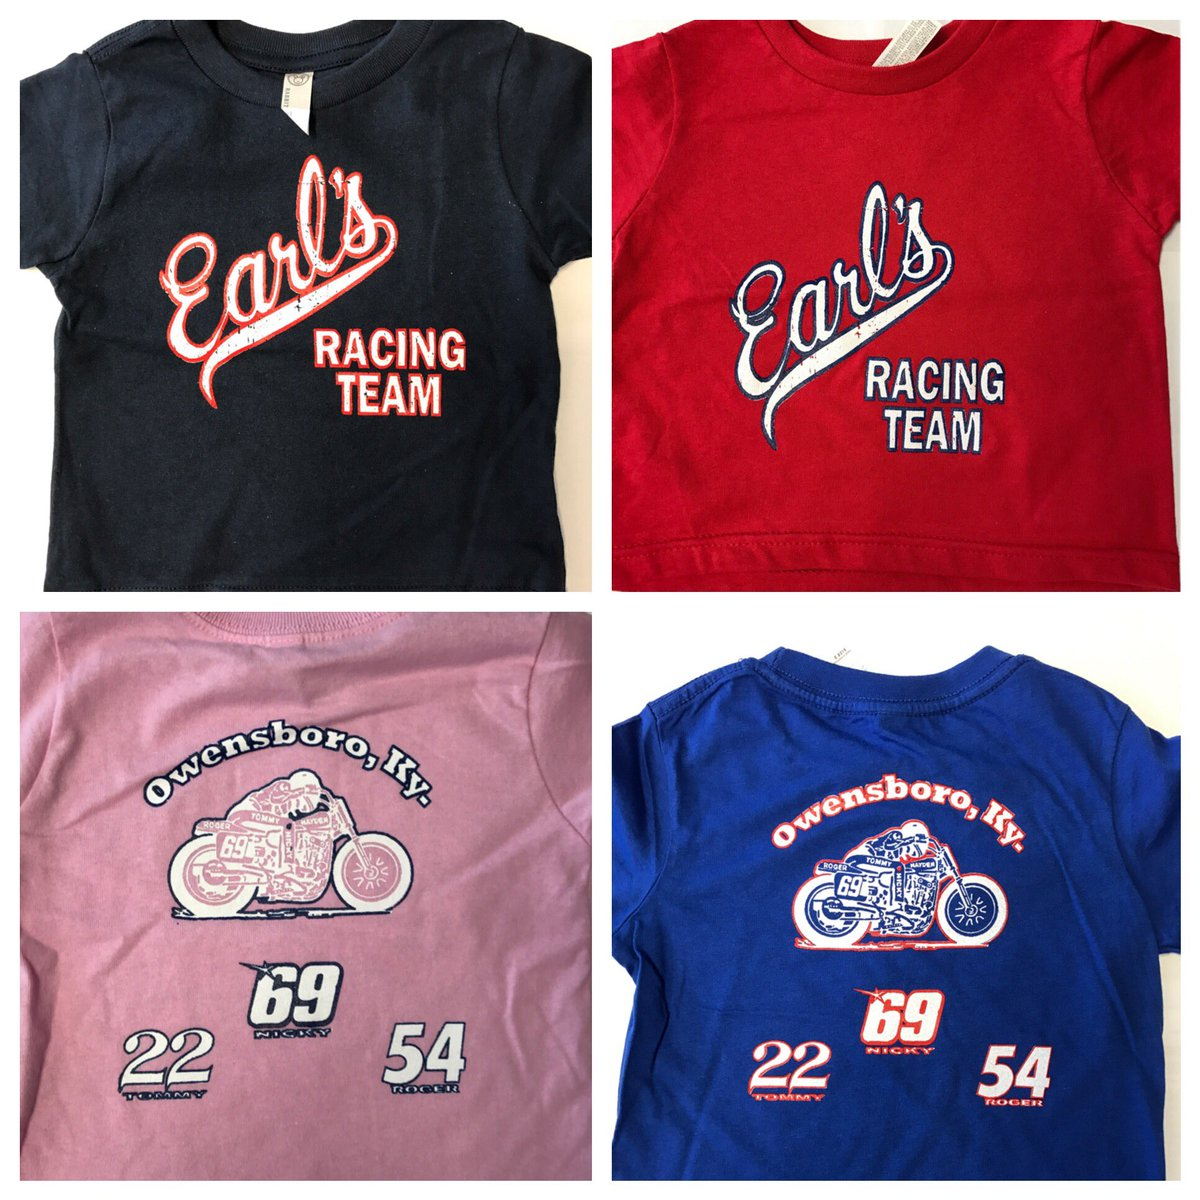 Earl's Racing Team shirts available in Youth sizes also available on our website!!! 🎅🎄